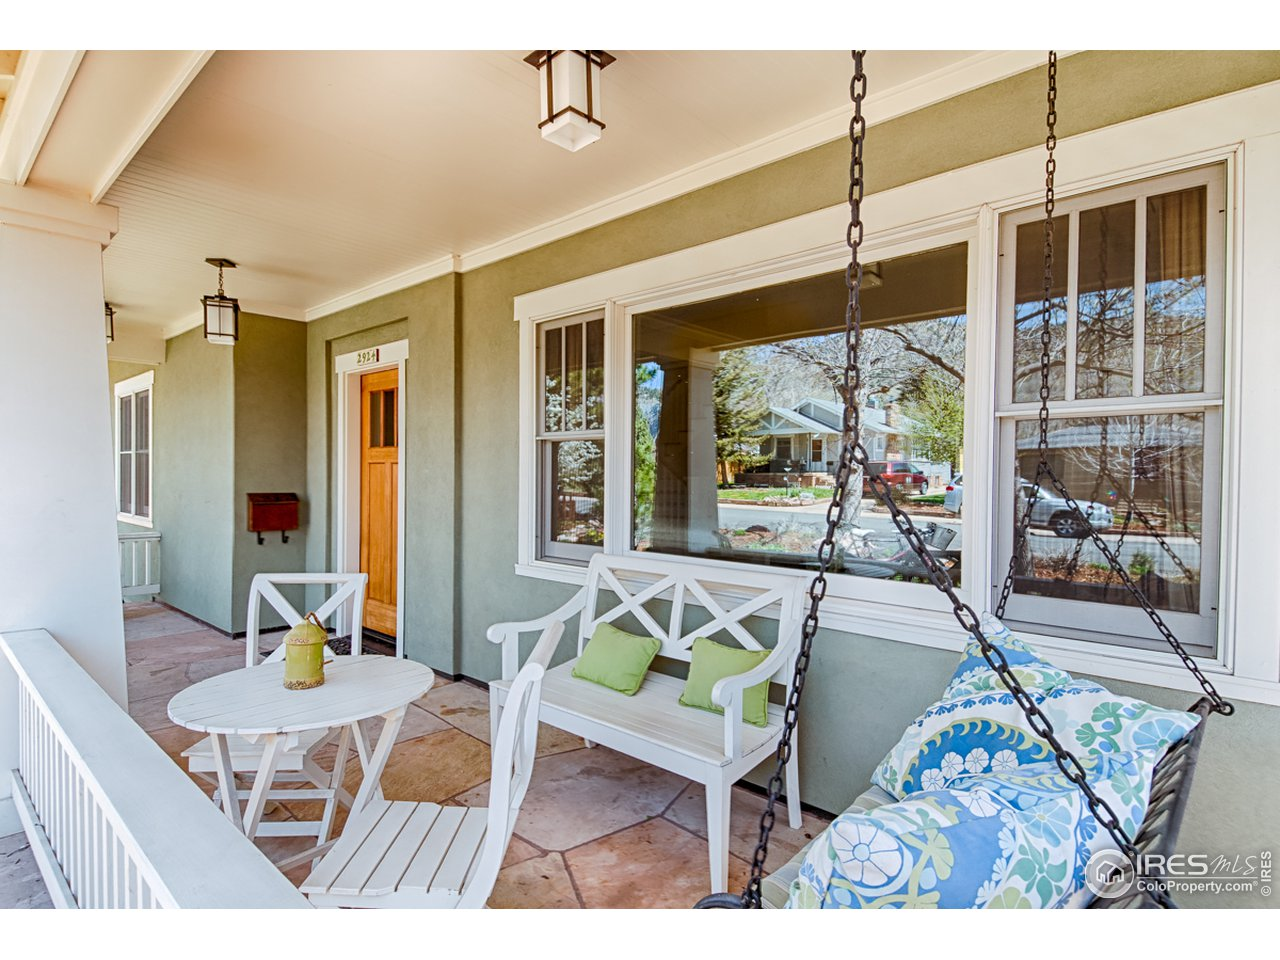 Hang out on the pleasant front porch